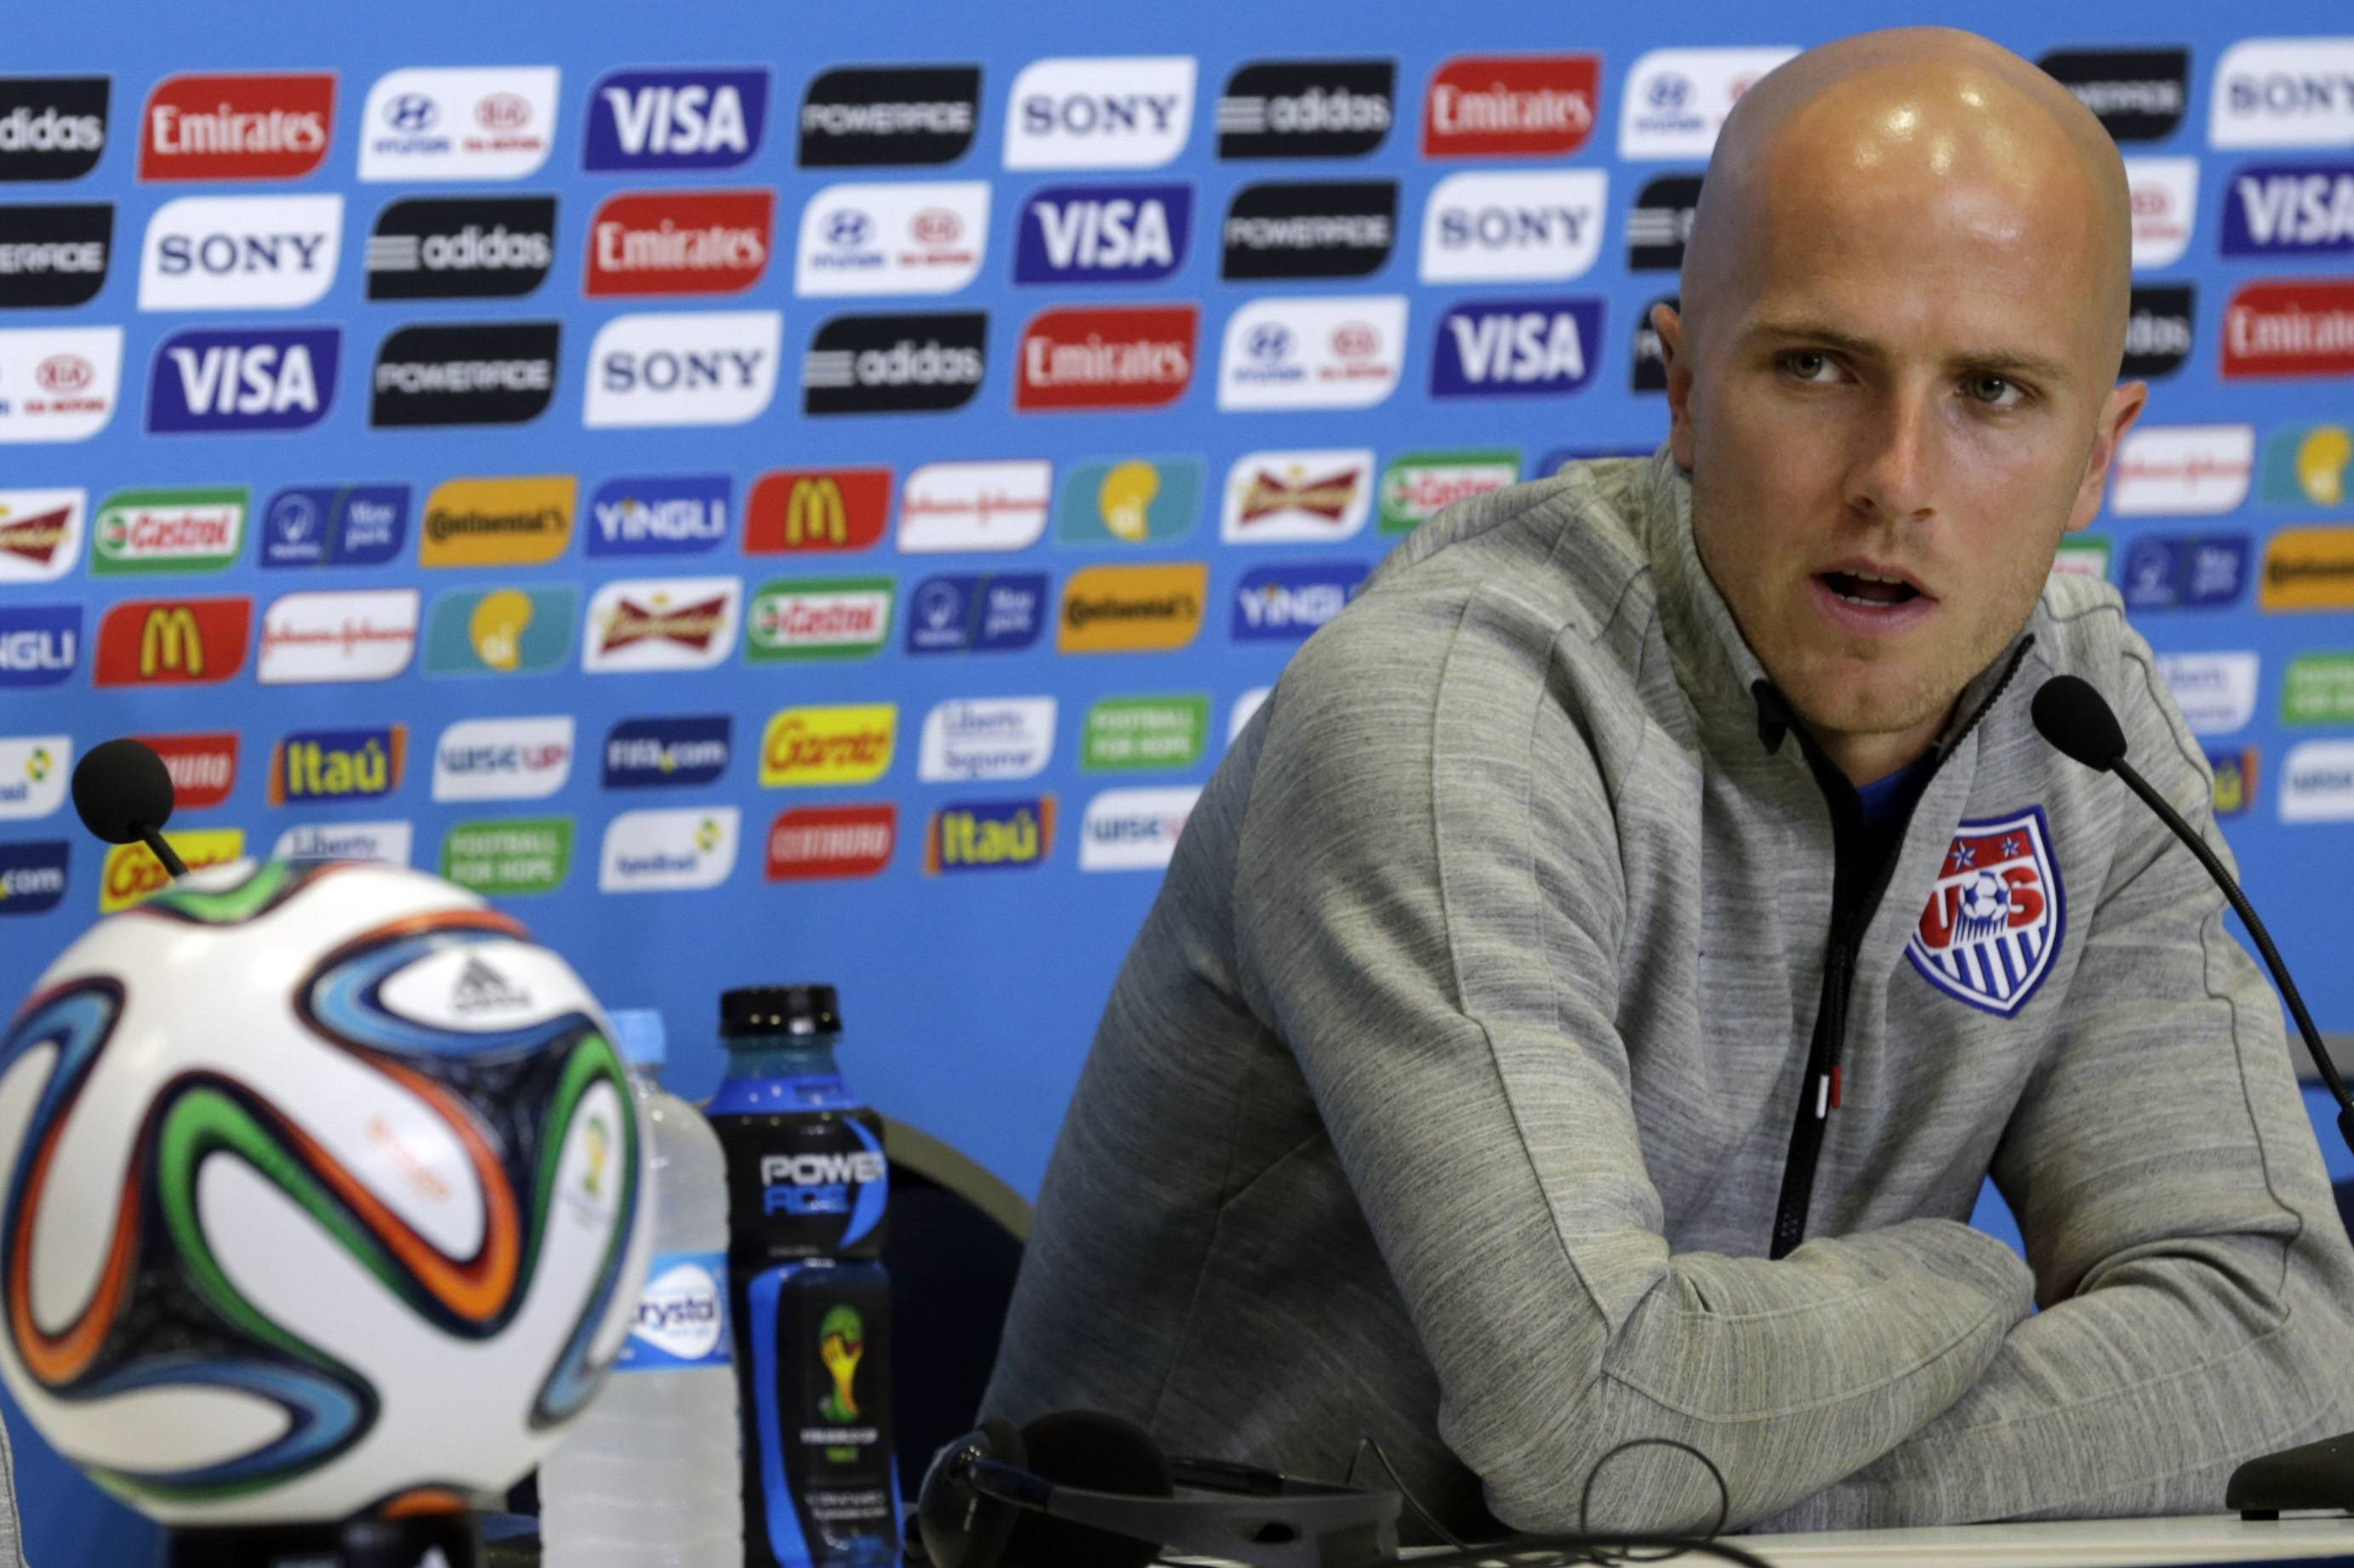 United States' Michael Bradley attends a news conference Sunday before an official team training session. The U.S. will play Ghana at 5 p.m. today as part of group G at the World Cup in Natal, Brazil. Bradley is one of the five players to watch on the U.S. squad, according to sports writer Orrin Schwarz.